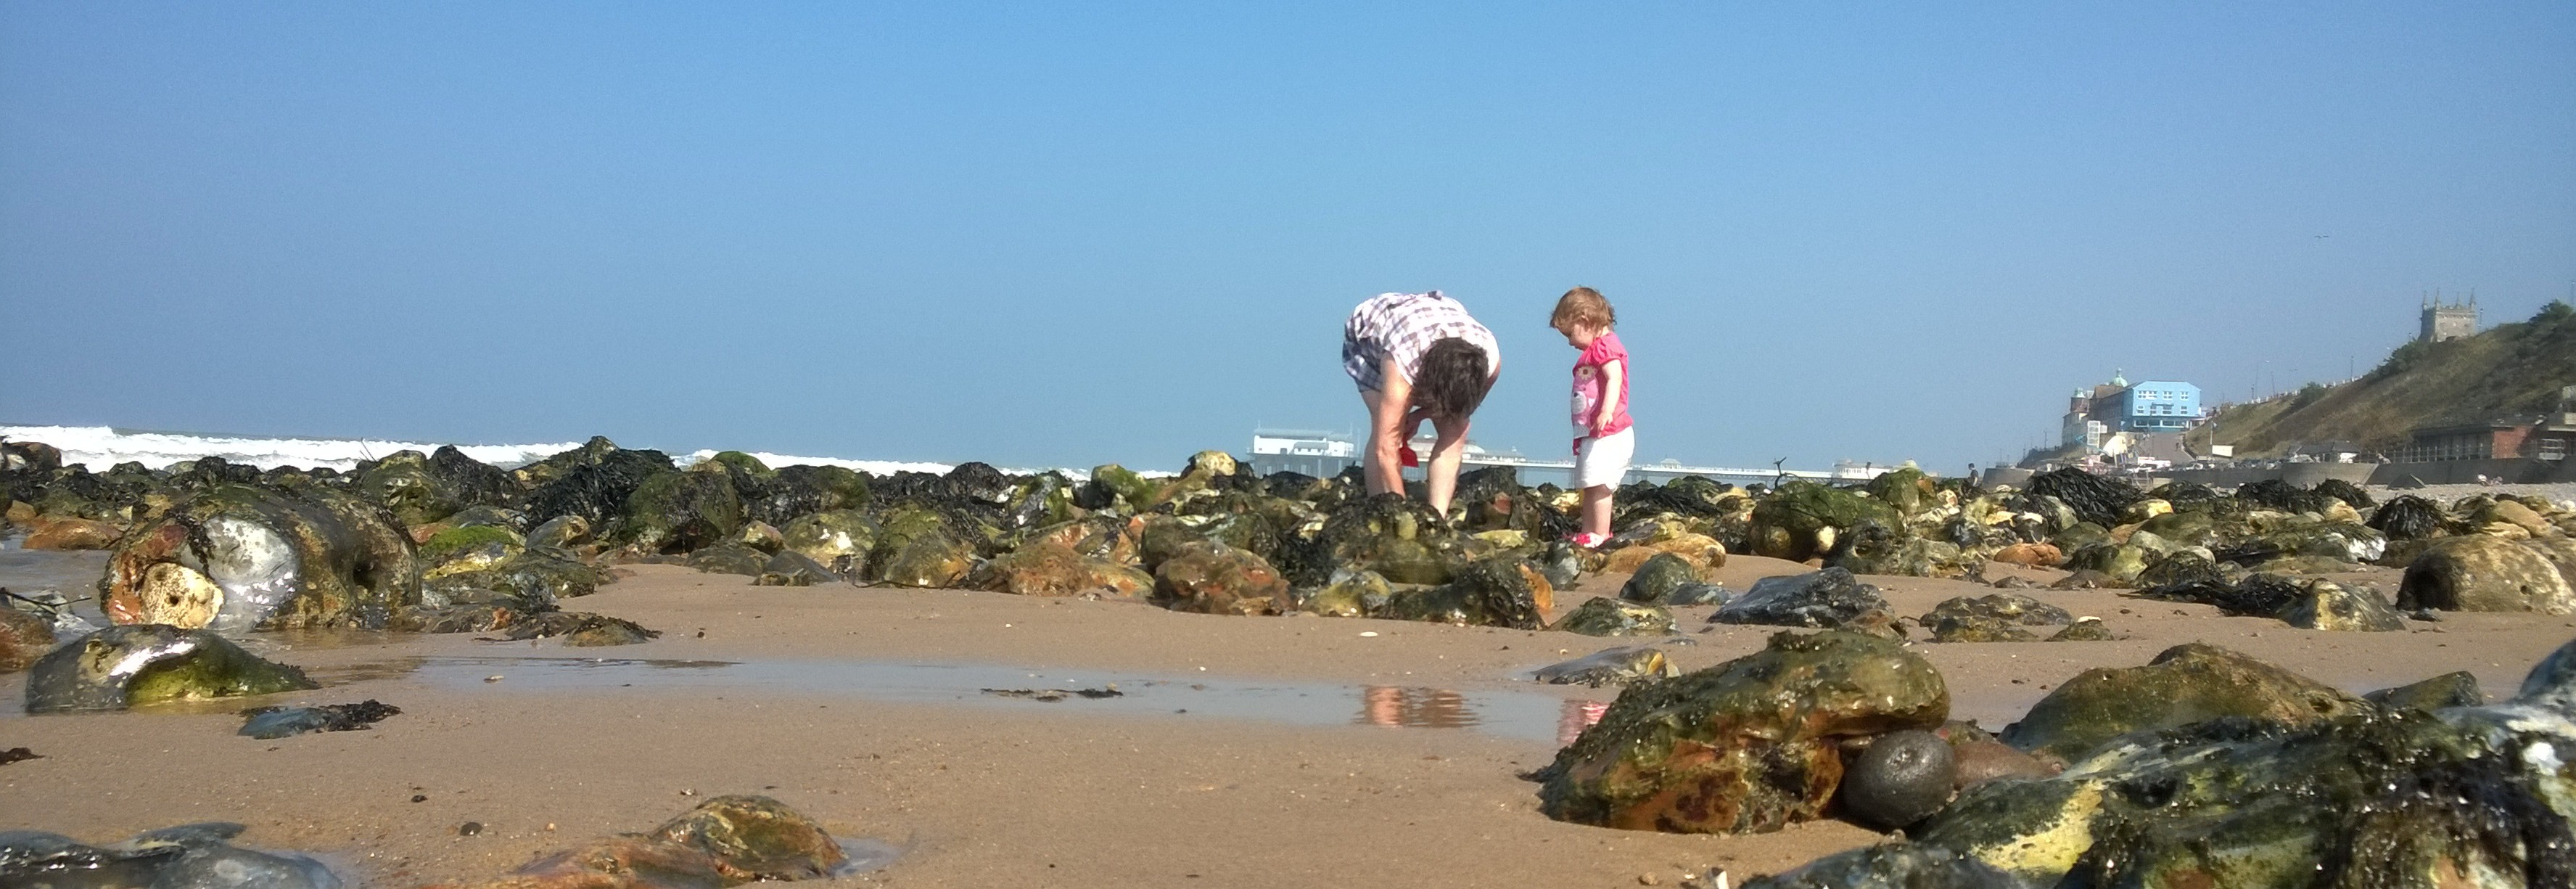 Rock pools at the beach...?